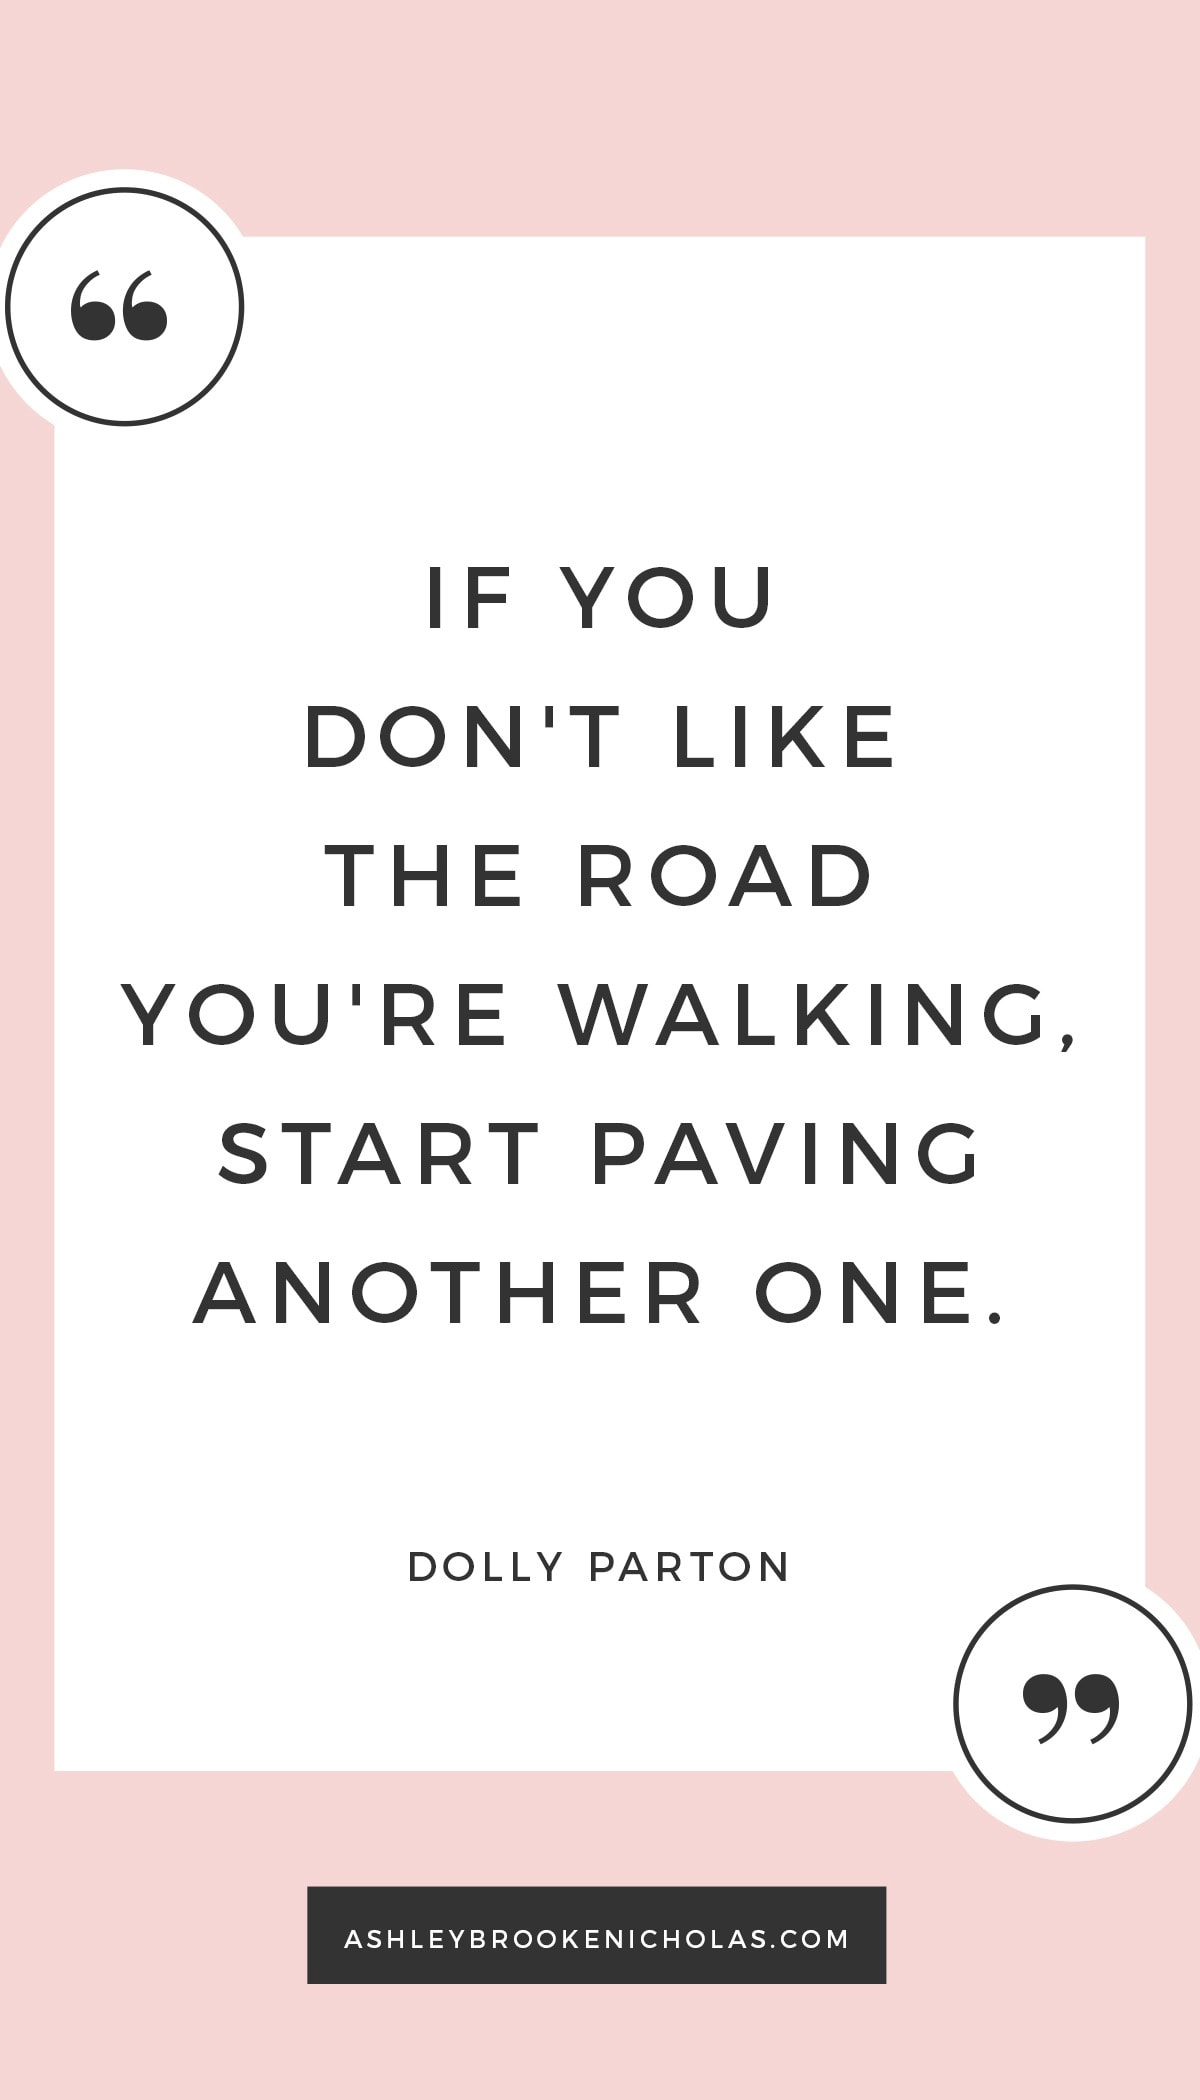 If you don't like the road you're walking, start paving another one. - Dolly Parton | The best girl boss quotes, girl boss, girlboss quotes, girlboss inspiration